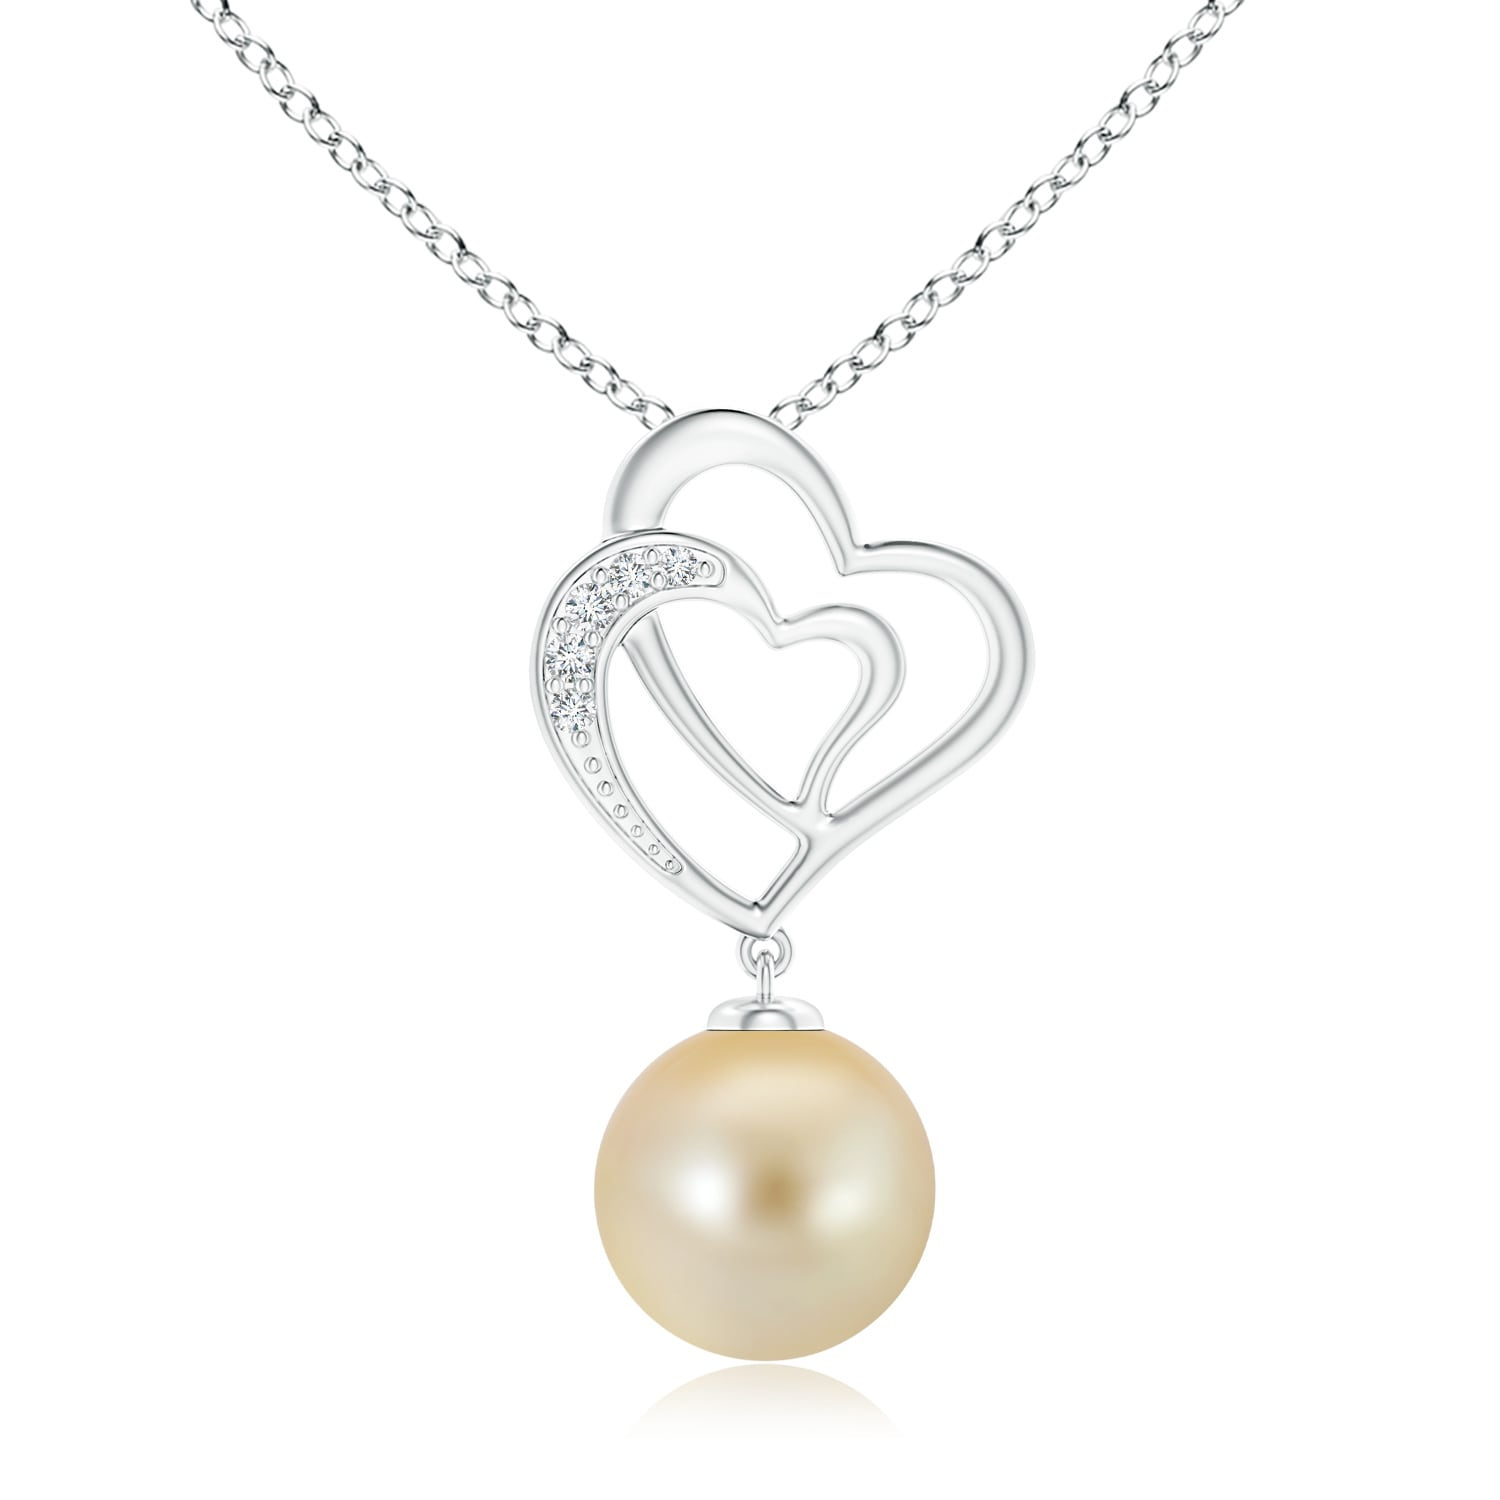 June Birthstone Pendant Necklaces – Golden South Sea Cultured Pearl  Entwined Heart Pendant In 14K White Gold (10Mm Golden South Sea Cultured  Pearl) – Regarding Most Popular Asymmetrical Heart Necklaces (View 14 of 25)